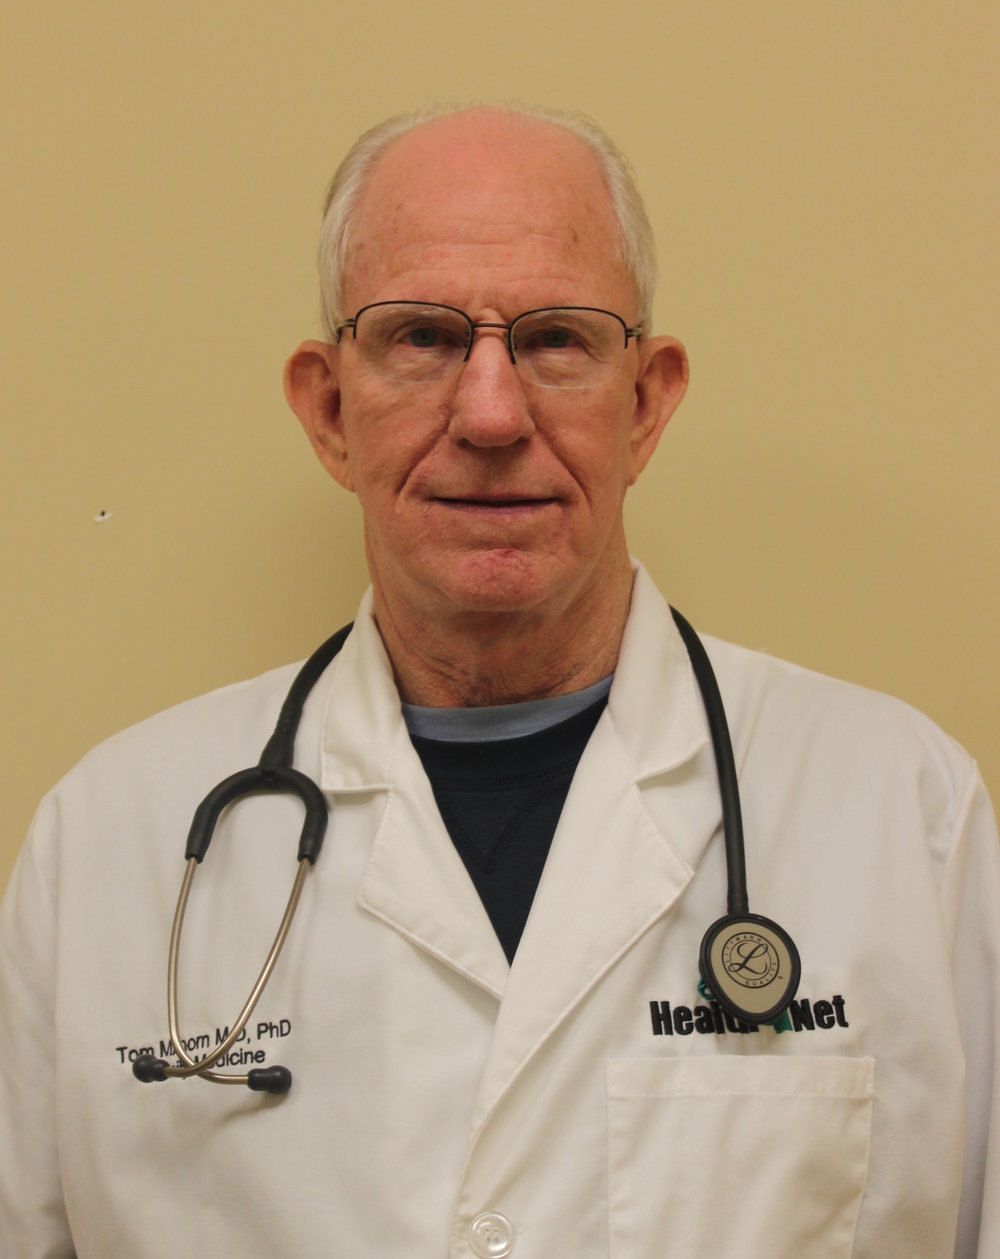 Dr. Tom Milhorn, M.D., Ph.D Didactics Dr. Tom Milhorn attended Dobyns-Bennett High School from 1951 to 1955 where he played football and ran the mile and half mile in track. After graduation he attended Lincoln Memorial University where he was twice elected to the all-star intramural basketball team. At graduation in 1960 he received an award for having the highest academic average in scientific subjects.    He received a PhD in physiology and biophysics from the University of Mississippi Medical Center (UMMC) in Jackson, Mississippi in 1964. Afterward, he did a postdoctoral fellowship in biomathematics at North Carolina State University in Raleigh.     With the beginning rank of assistant professor, Dr. Milhorn joined the Department of Physiology and Biophysics at UMMC. During this time he was the director of the Mississippi Biomedical Engineering Program, a joint program among the University of Mississippi Medical Center, the University of Mississippi School of Engineering, and the Mississippi State University College of Engineering.     In 1975, he received his M.D. from the University of Mississippi School of Medicine and subsequently completed a family medicine residency. He continues to be board certified in that specialty. In 1987, he was certified in addiction medicine by the American Society of Addiction Medicine.    In 1992, Dr. Milhorn retired from the faculty of the University of Mississippi Medical Center with the ranks of Professor of Family Medicine, Professor of Physiology and Biophysics, and Associate Professor of Psychiatry and Human Behavior. After that he practiced general medicine and addiction medicine in Meridian, Mississippi for nine years.     In 2001, he entered a period of semi-retirement. During that time he taught two computer courses for the city of Meridian and taught Human Anatomy and Physiology at Meridian Community College.     Dr. Milhorn has participated in academic programs in Spain, England, Sweden, the Soviet Union, and in many universities and medical schools throughout the United States. He is the author of 10 books, 12 chapters in books, and over 100 research and medical education papers. His lifetime hobby has been learning.     In 2005, he was inducted into the Lincoln Memorial University Hall of Fame and in 2016 he was inducted into the Dobyns-Bennett High School Hall of Fame.     He is married to Kay Milhorn, his wife of 48 years, and has a son, Toby Milhorn, and a stepson, Steve Pope.